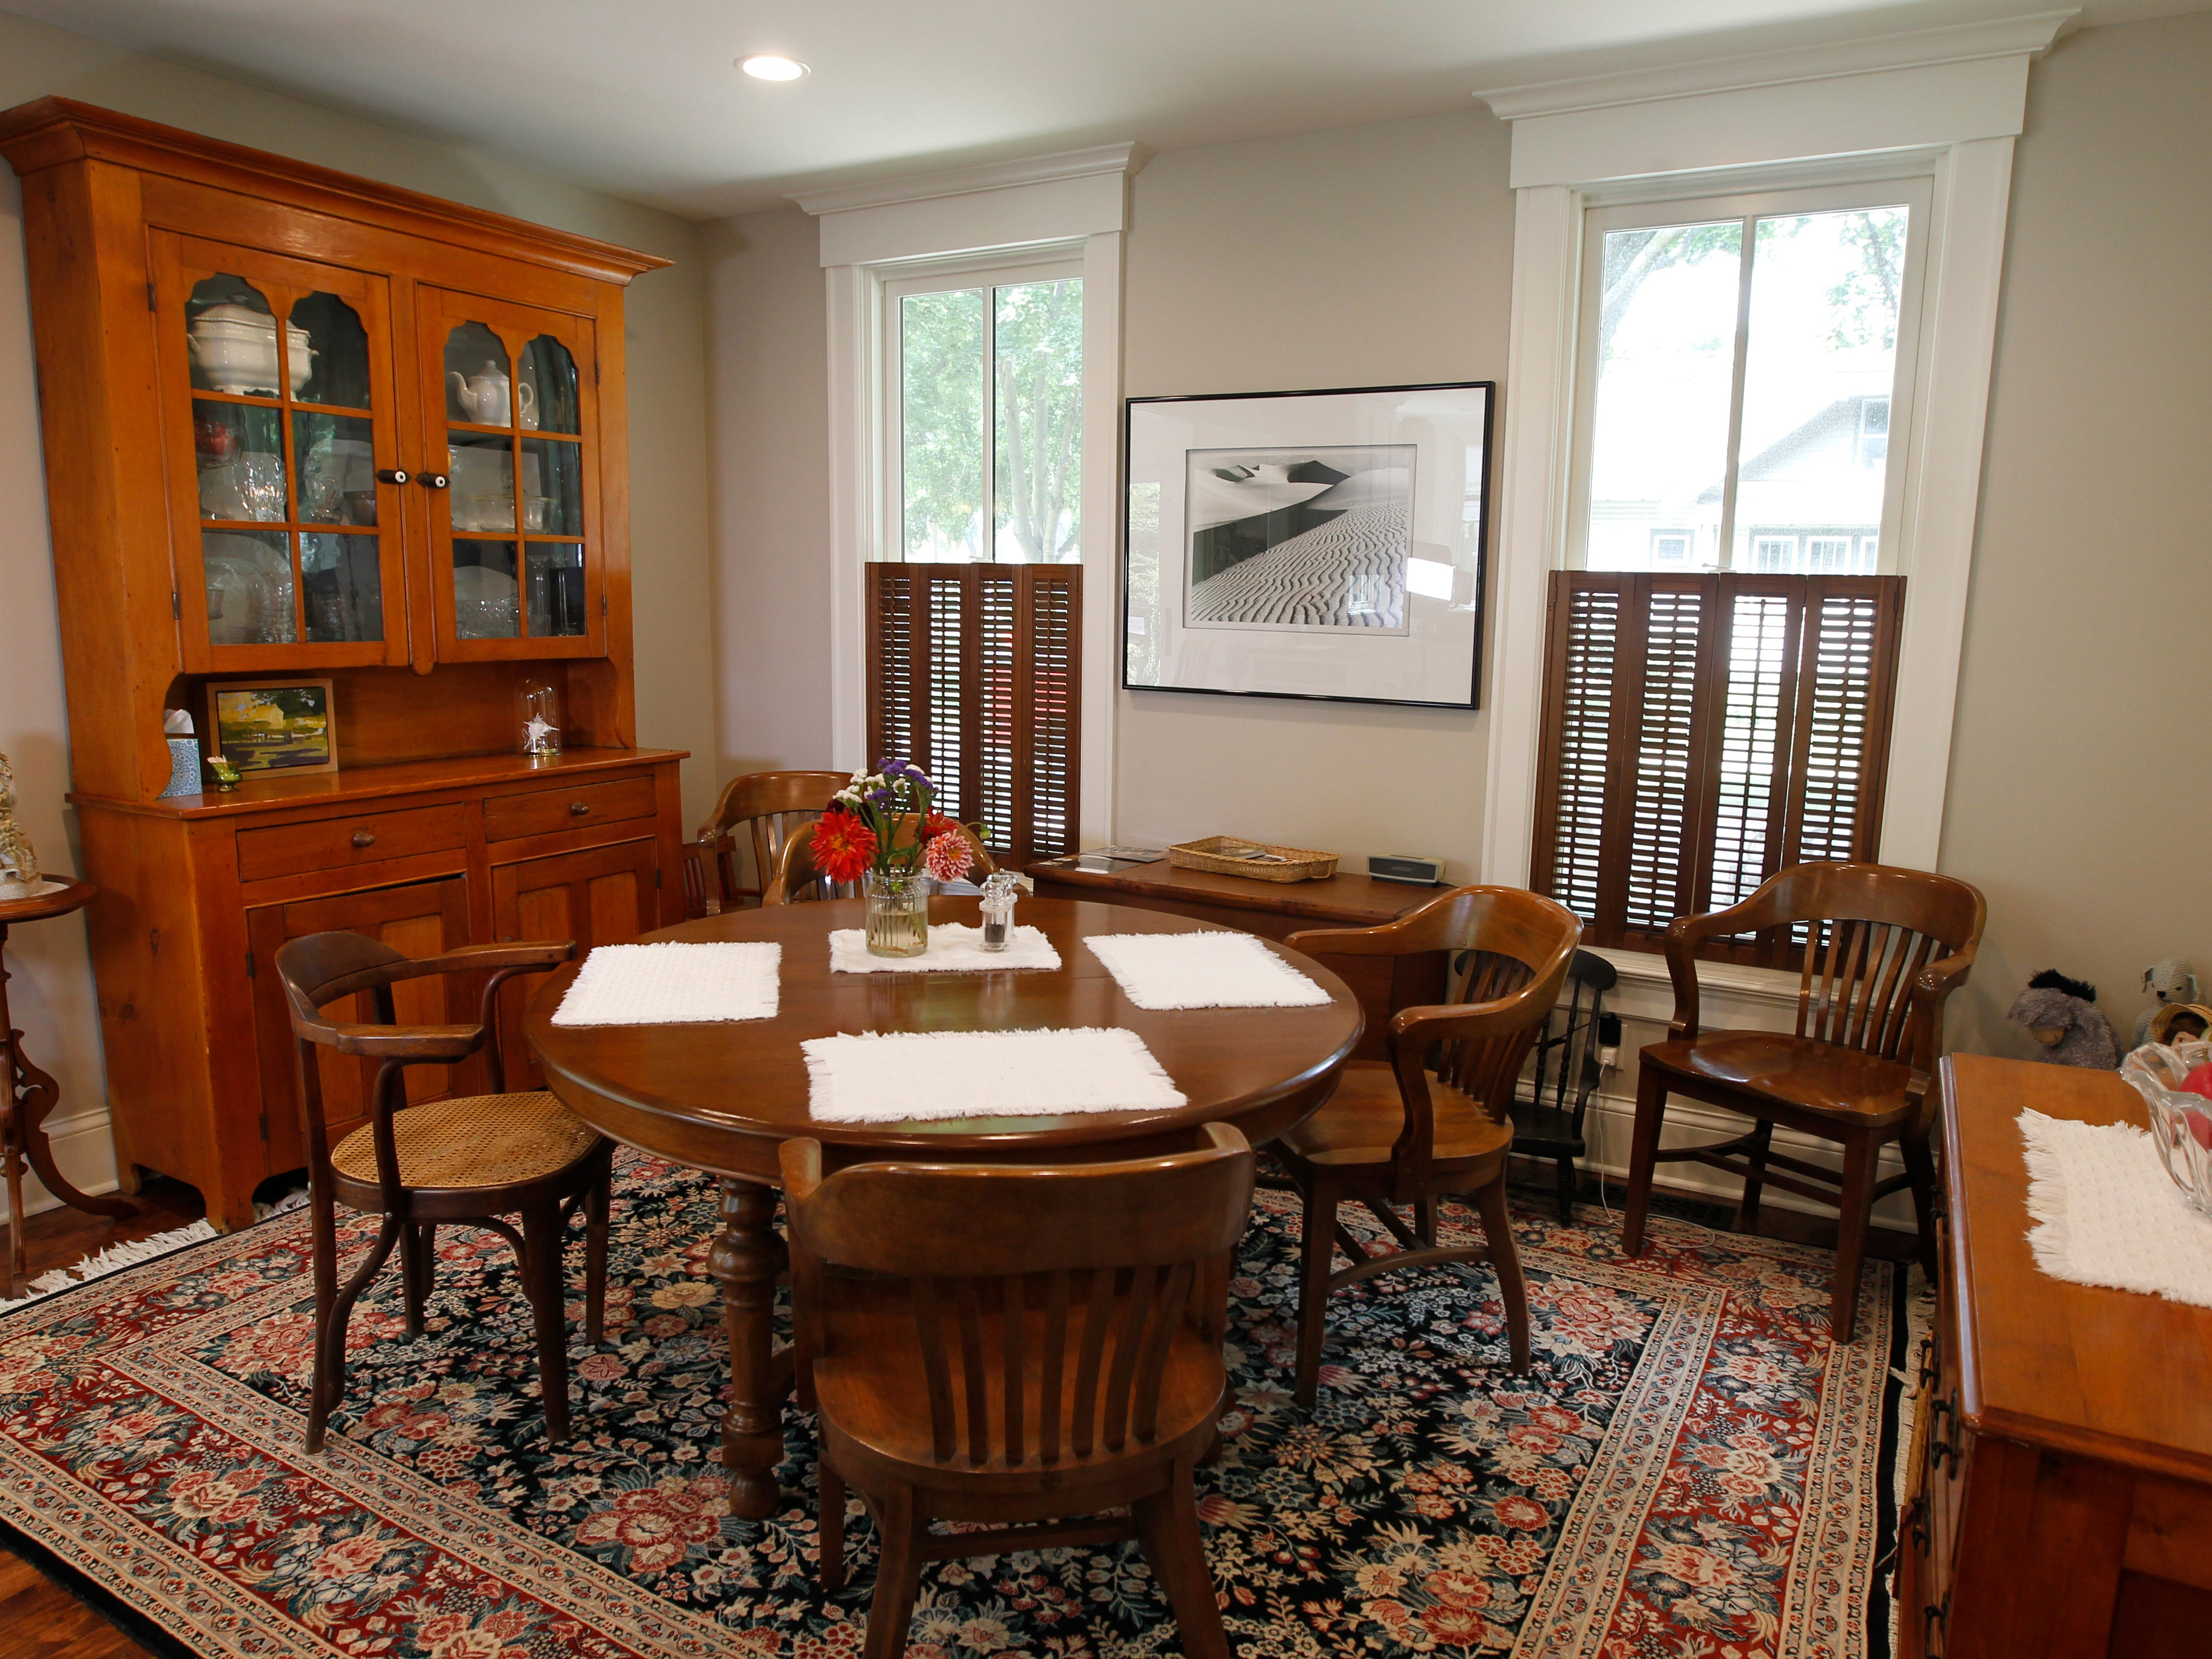 The dining area includes an antique pumpkin pine breakfront on the far left and a chest  of drawers from the Civil War era in the lower right.